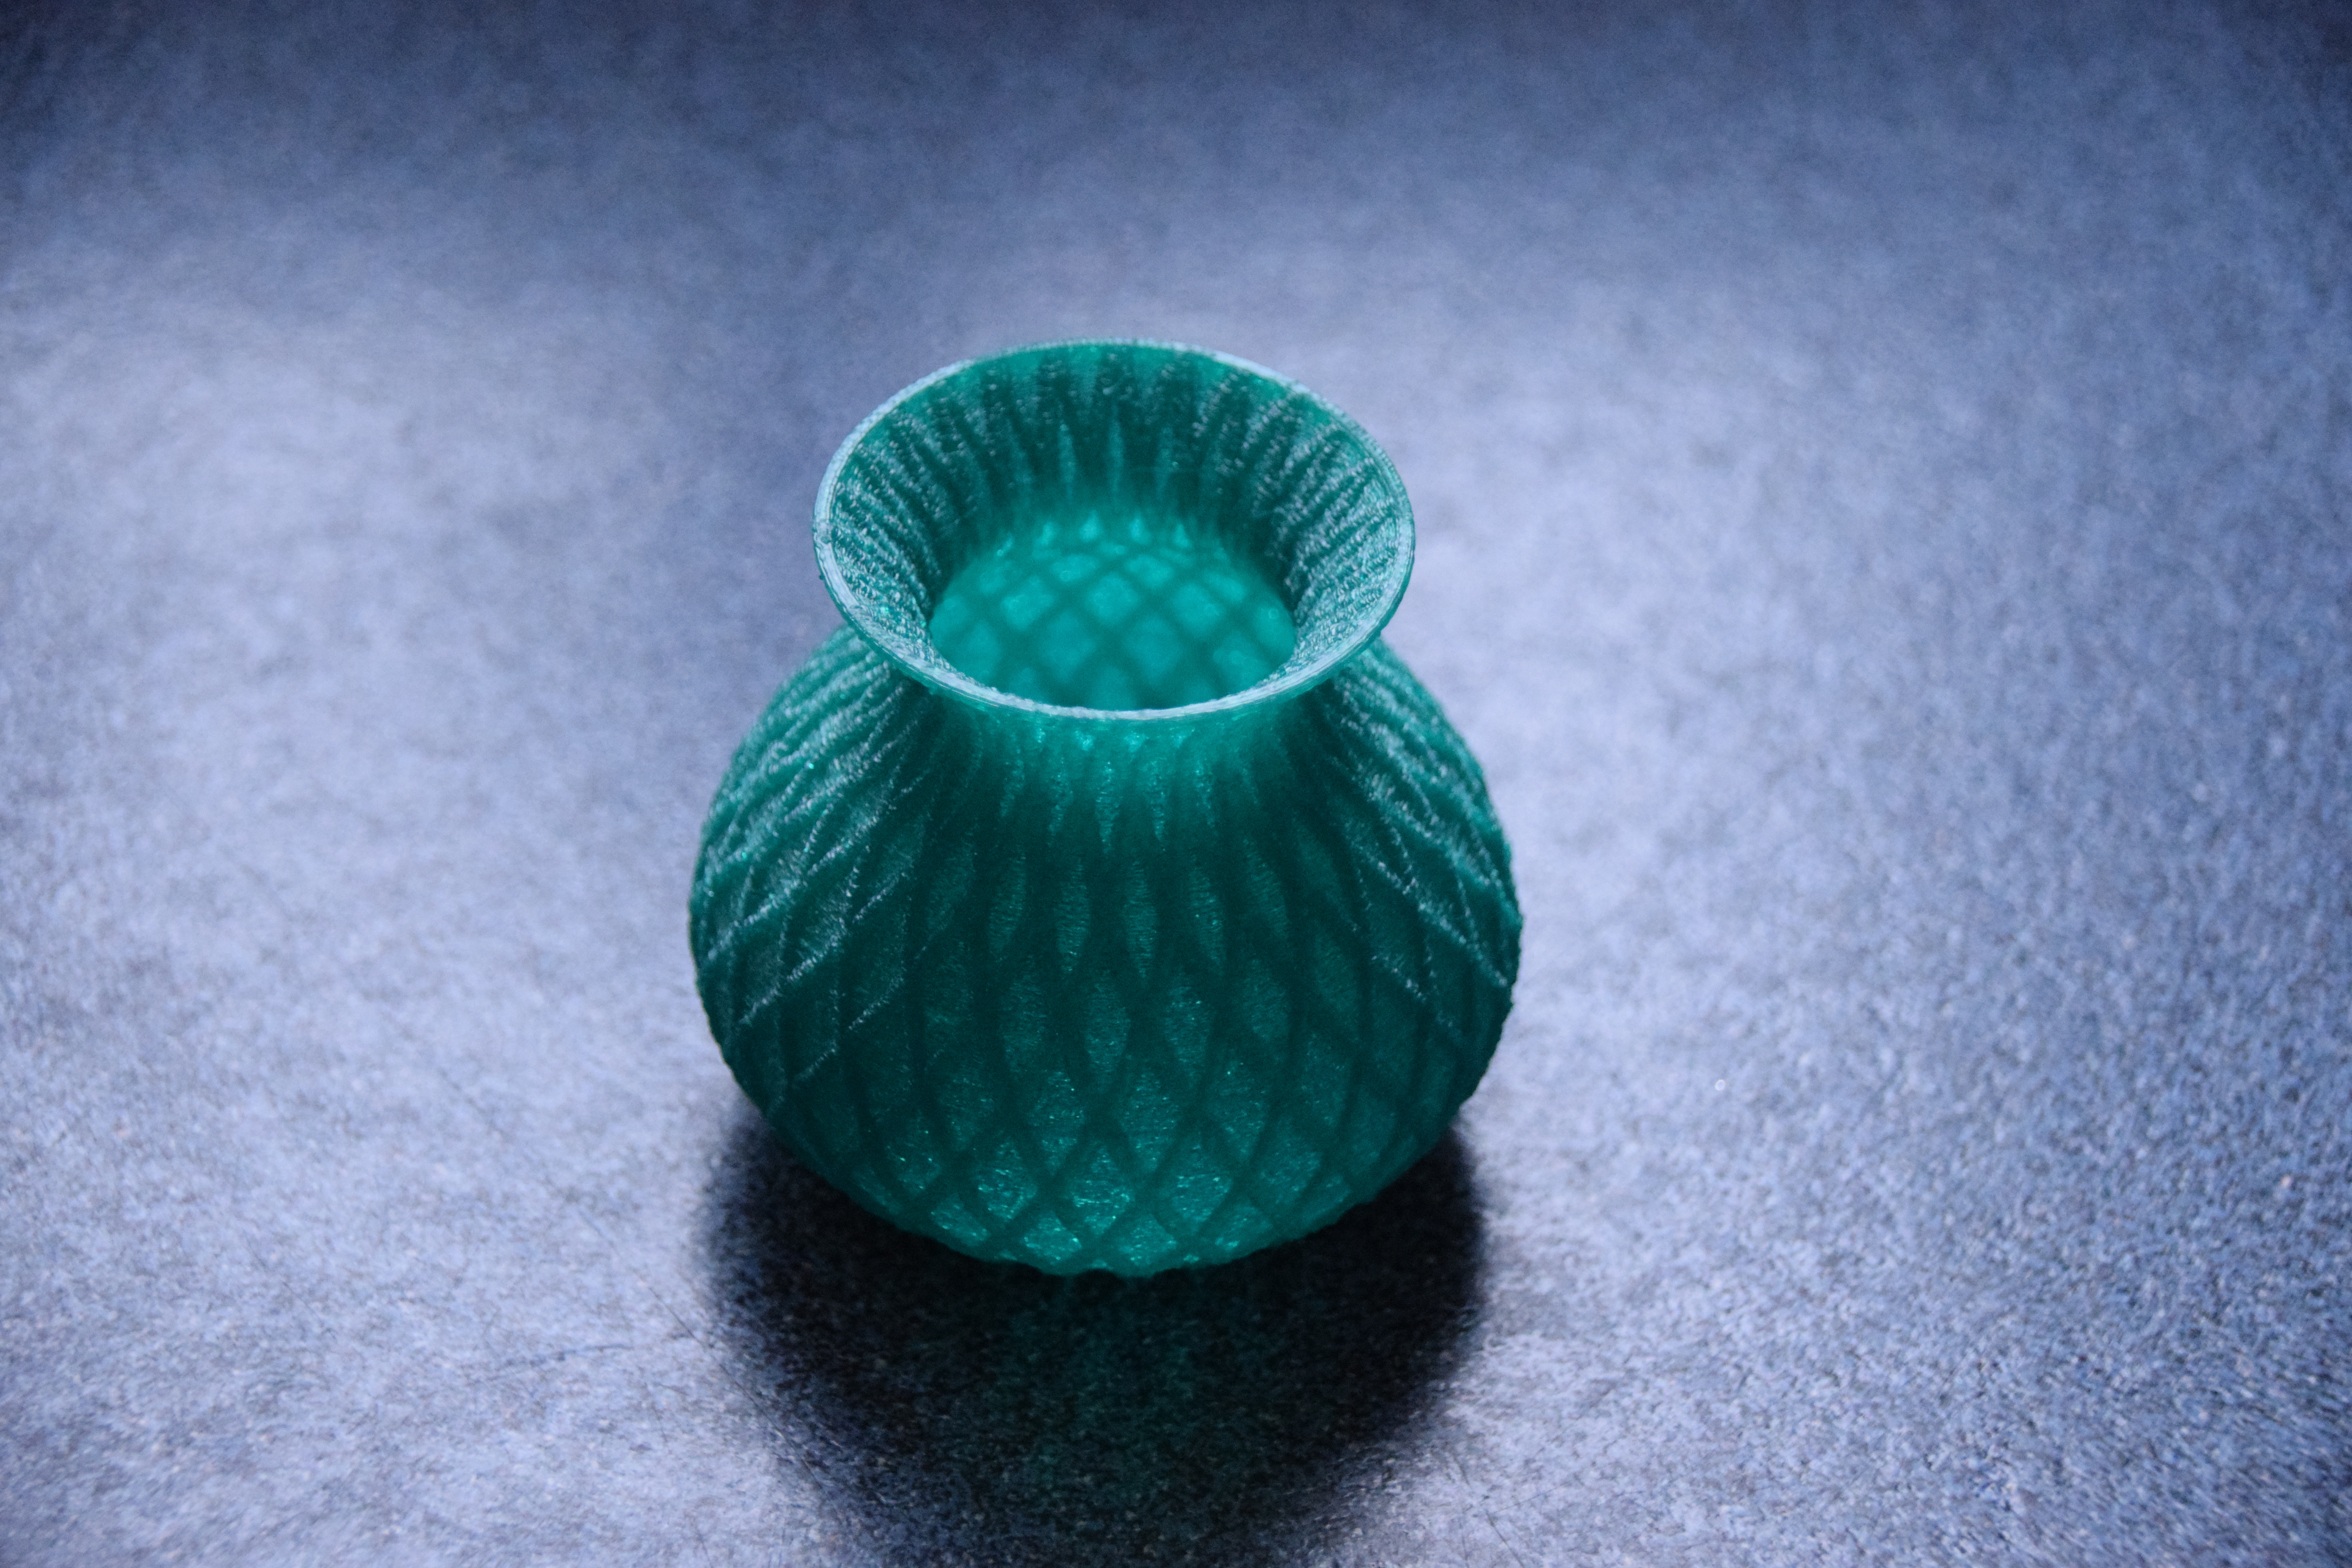 blue plastic vase of small vase by bastien thingiverse within by bastien may 27 2014 view original